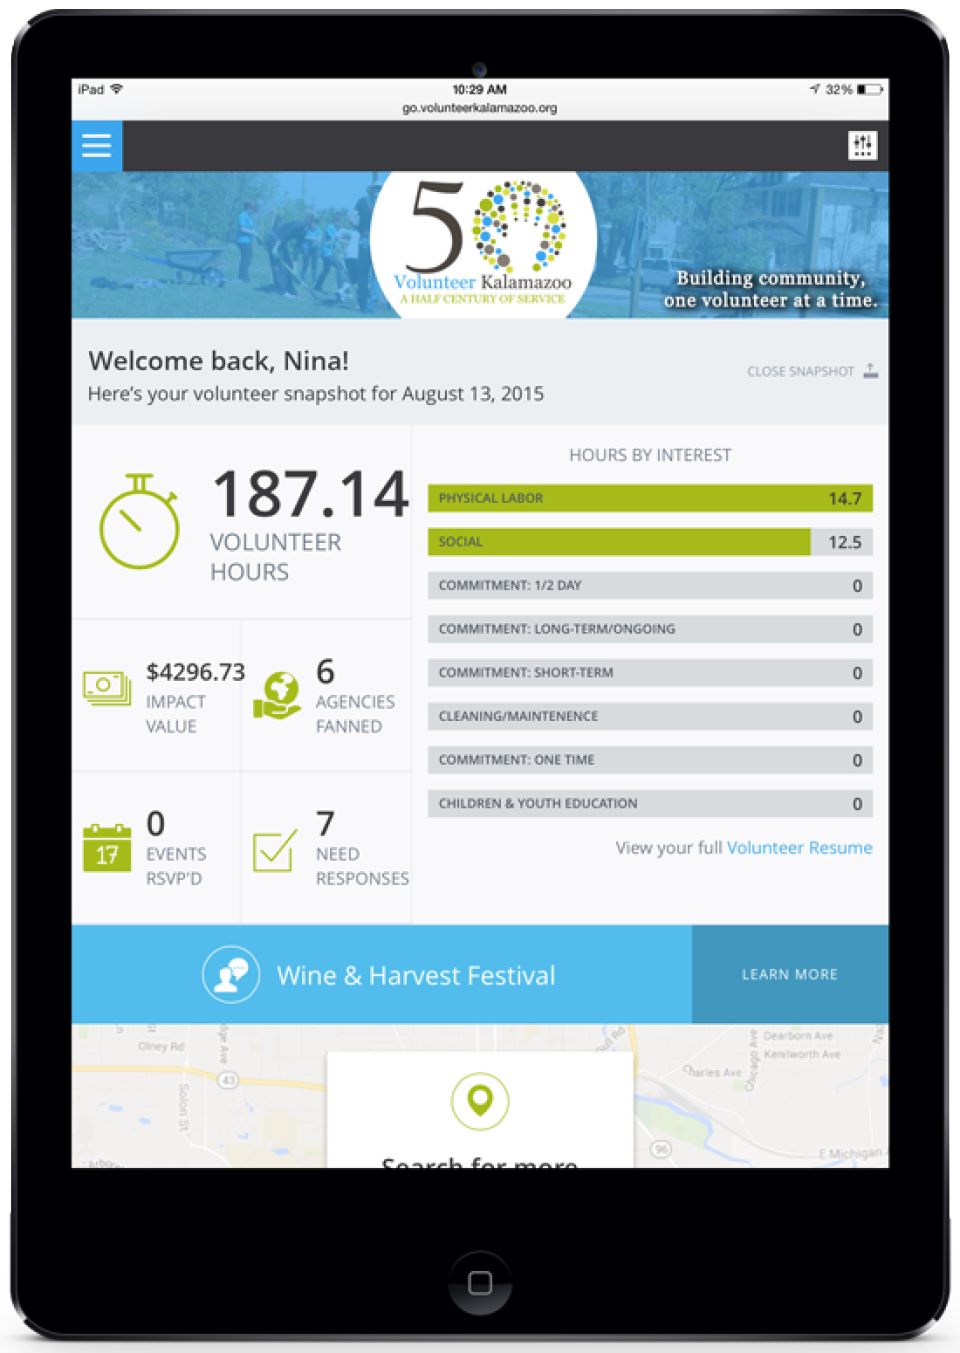 Get Connected Software - Get Connected's mobile-optimized user interface facilitates access from mobile and tablet devices